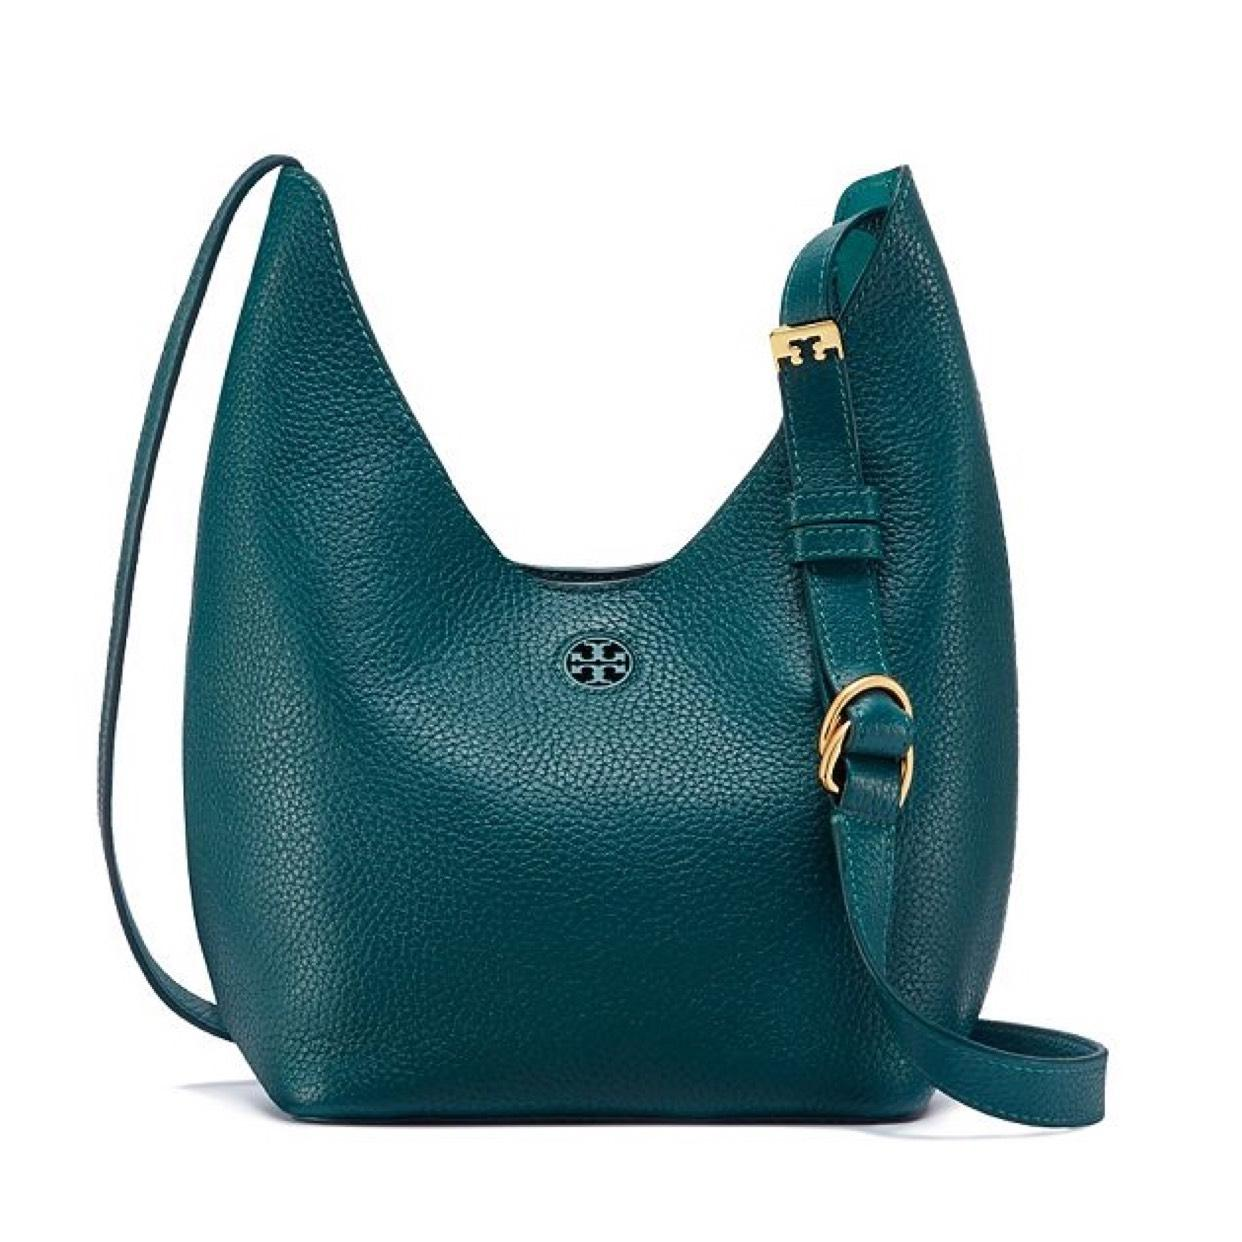 Tory Burch Perry Small Hobo Bag | Hobos on Sale